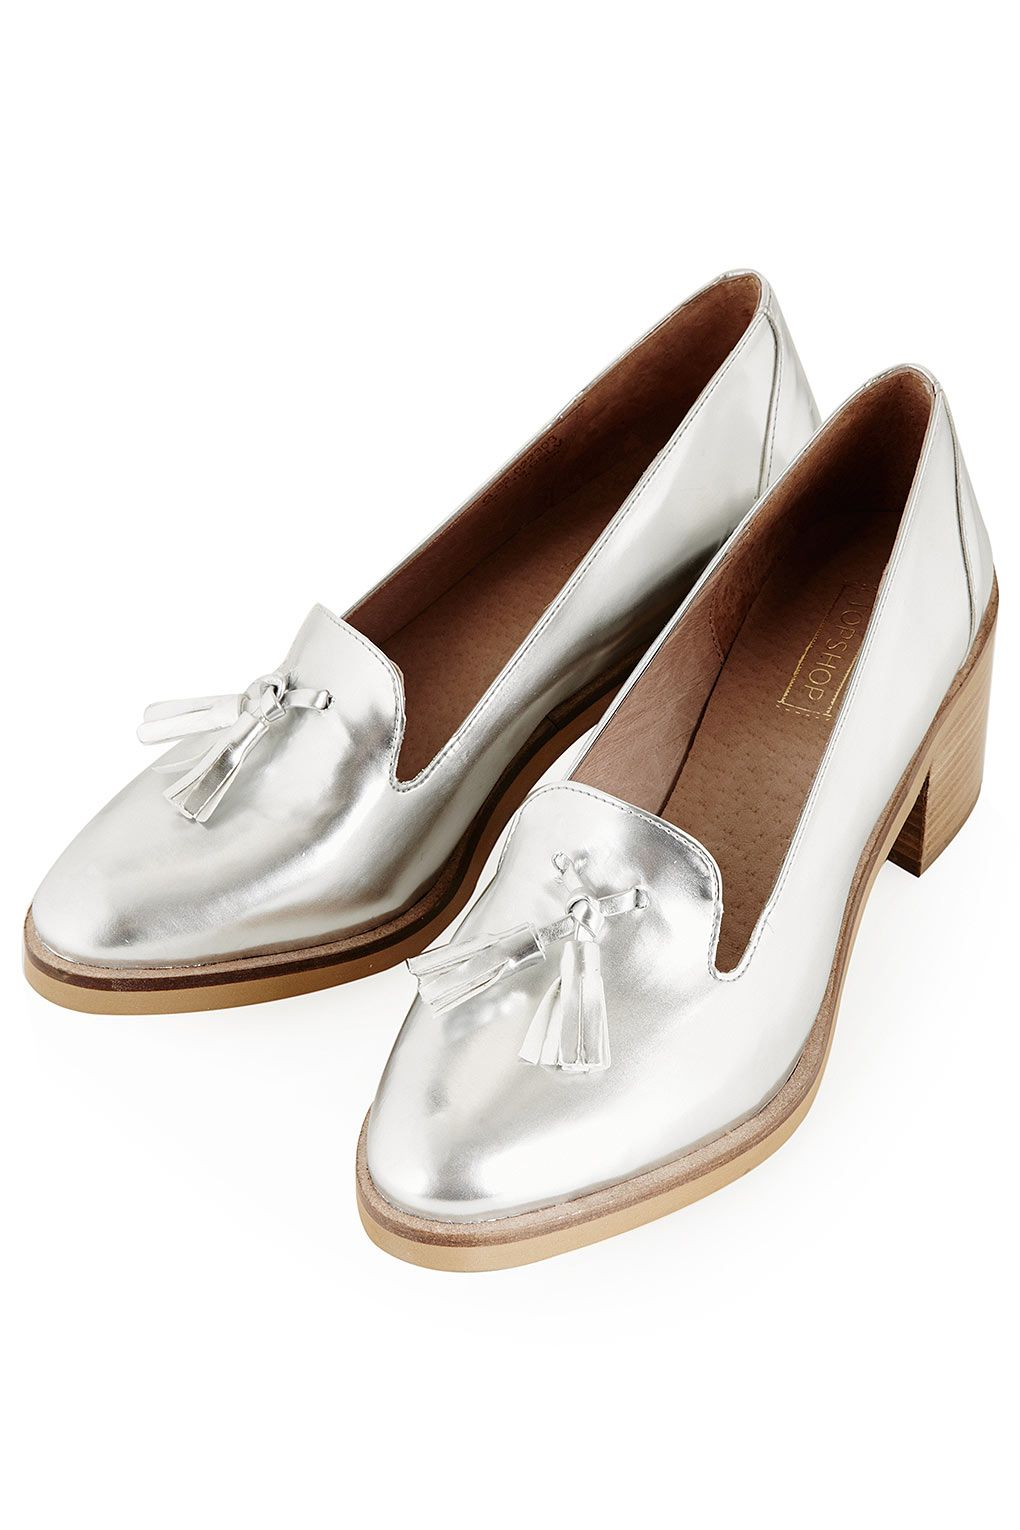 silver heeled loafers WHAT Sort of desperately needs these. I had silver  penny loafers in